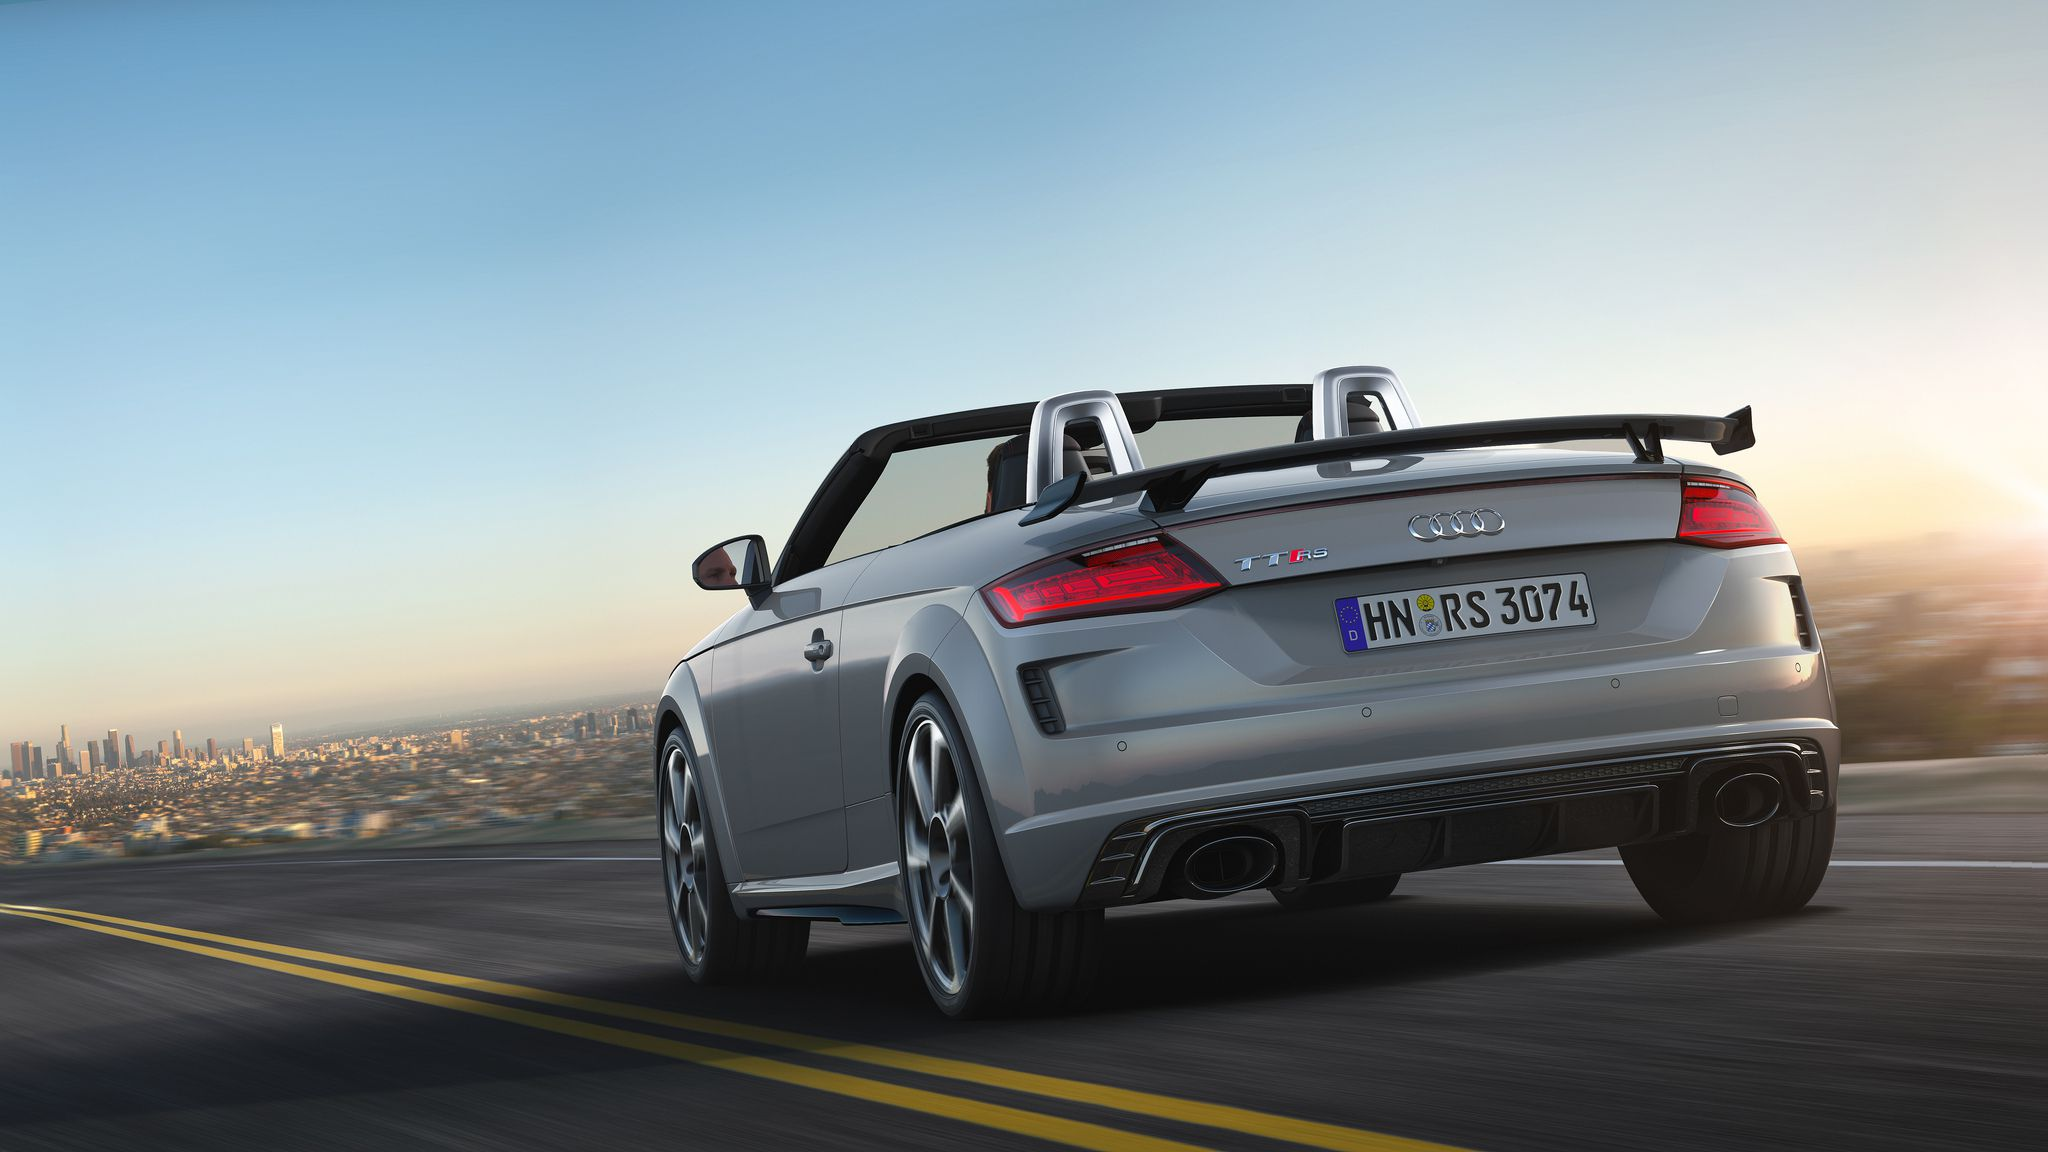 2019 Audi TT RS Roadster - tail view, in motion